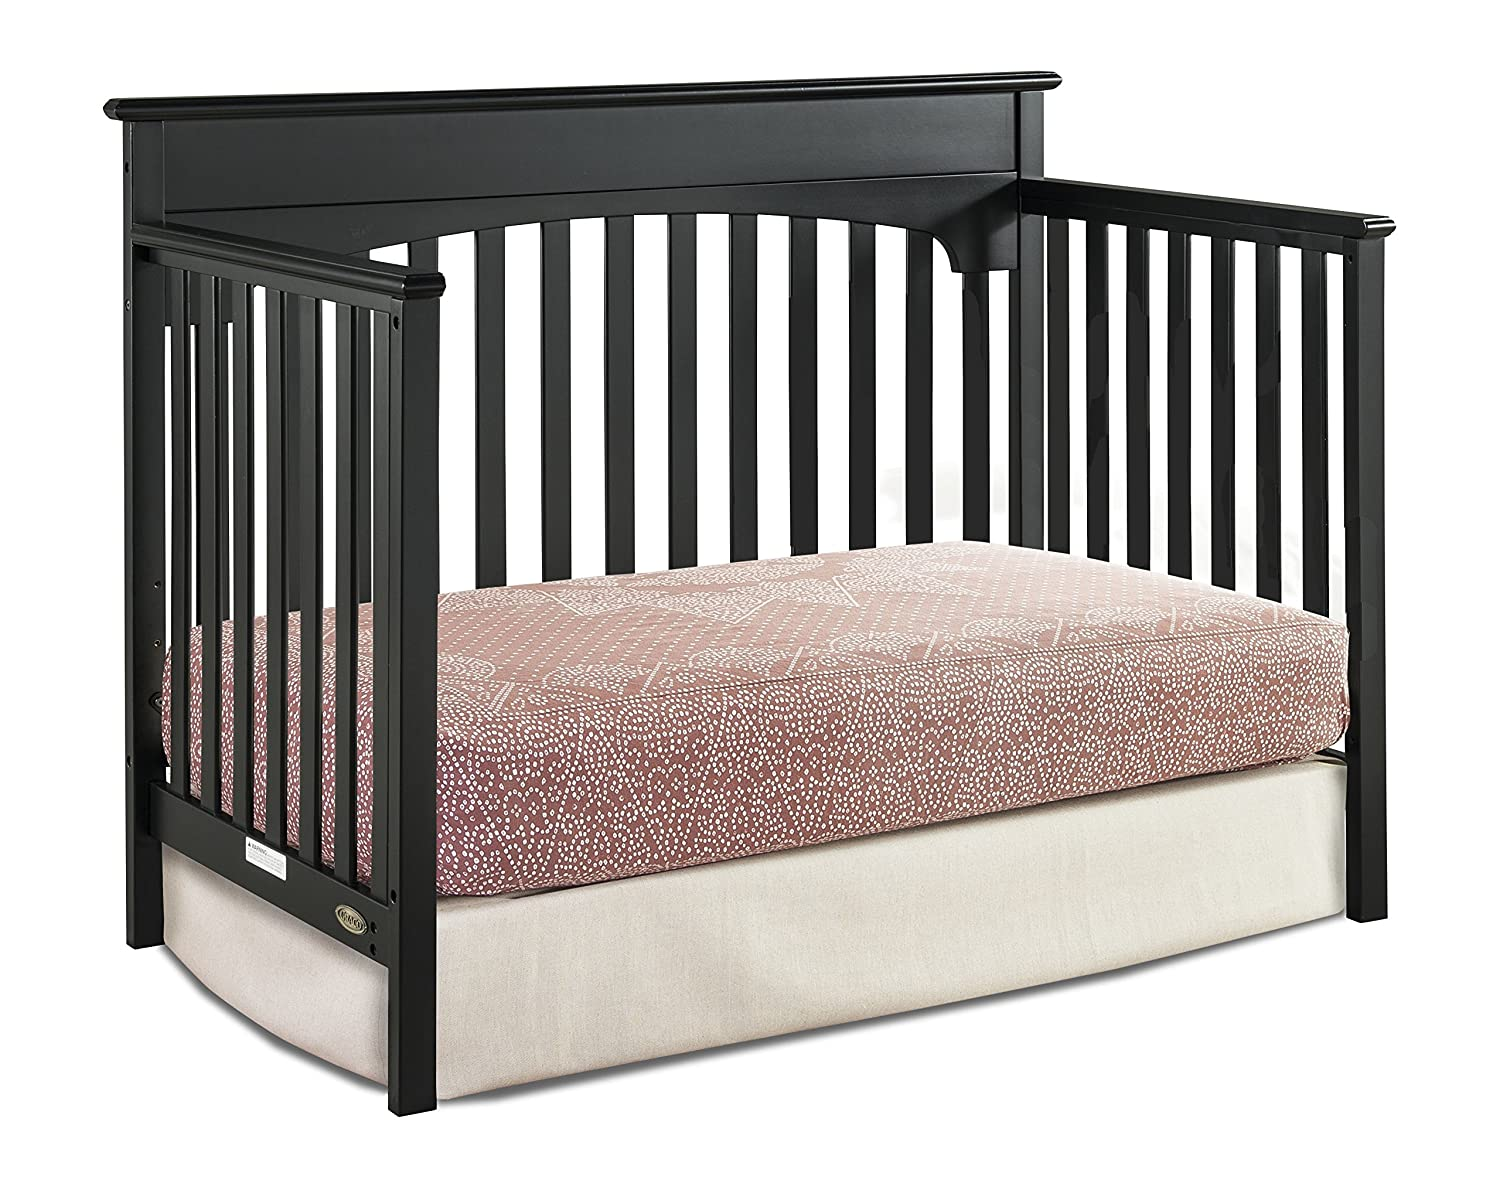 Amazon.com : Graco Lauren 4-in-1 Convertible Crib, Black, Easily Converts to Toddler Bed, Day Bed or Full Bed, 3 Position Adjustable Height Mattress ...